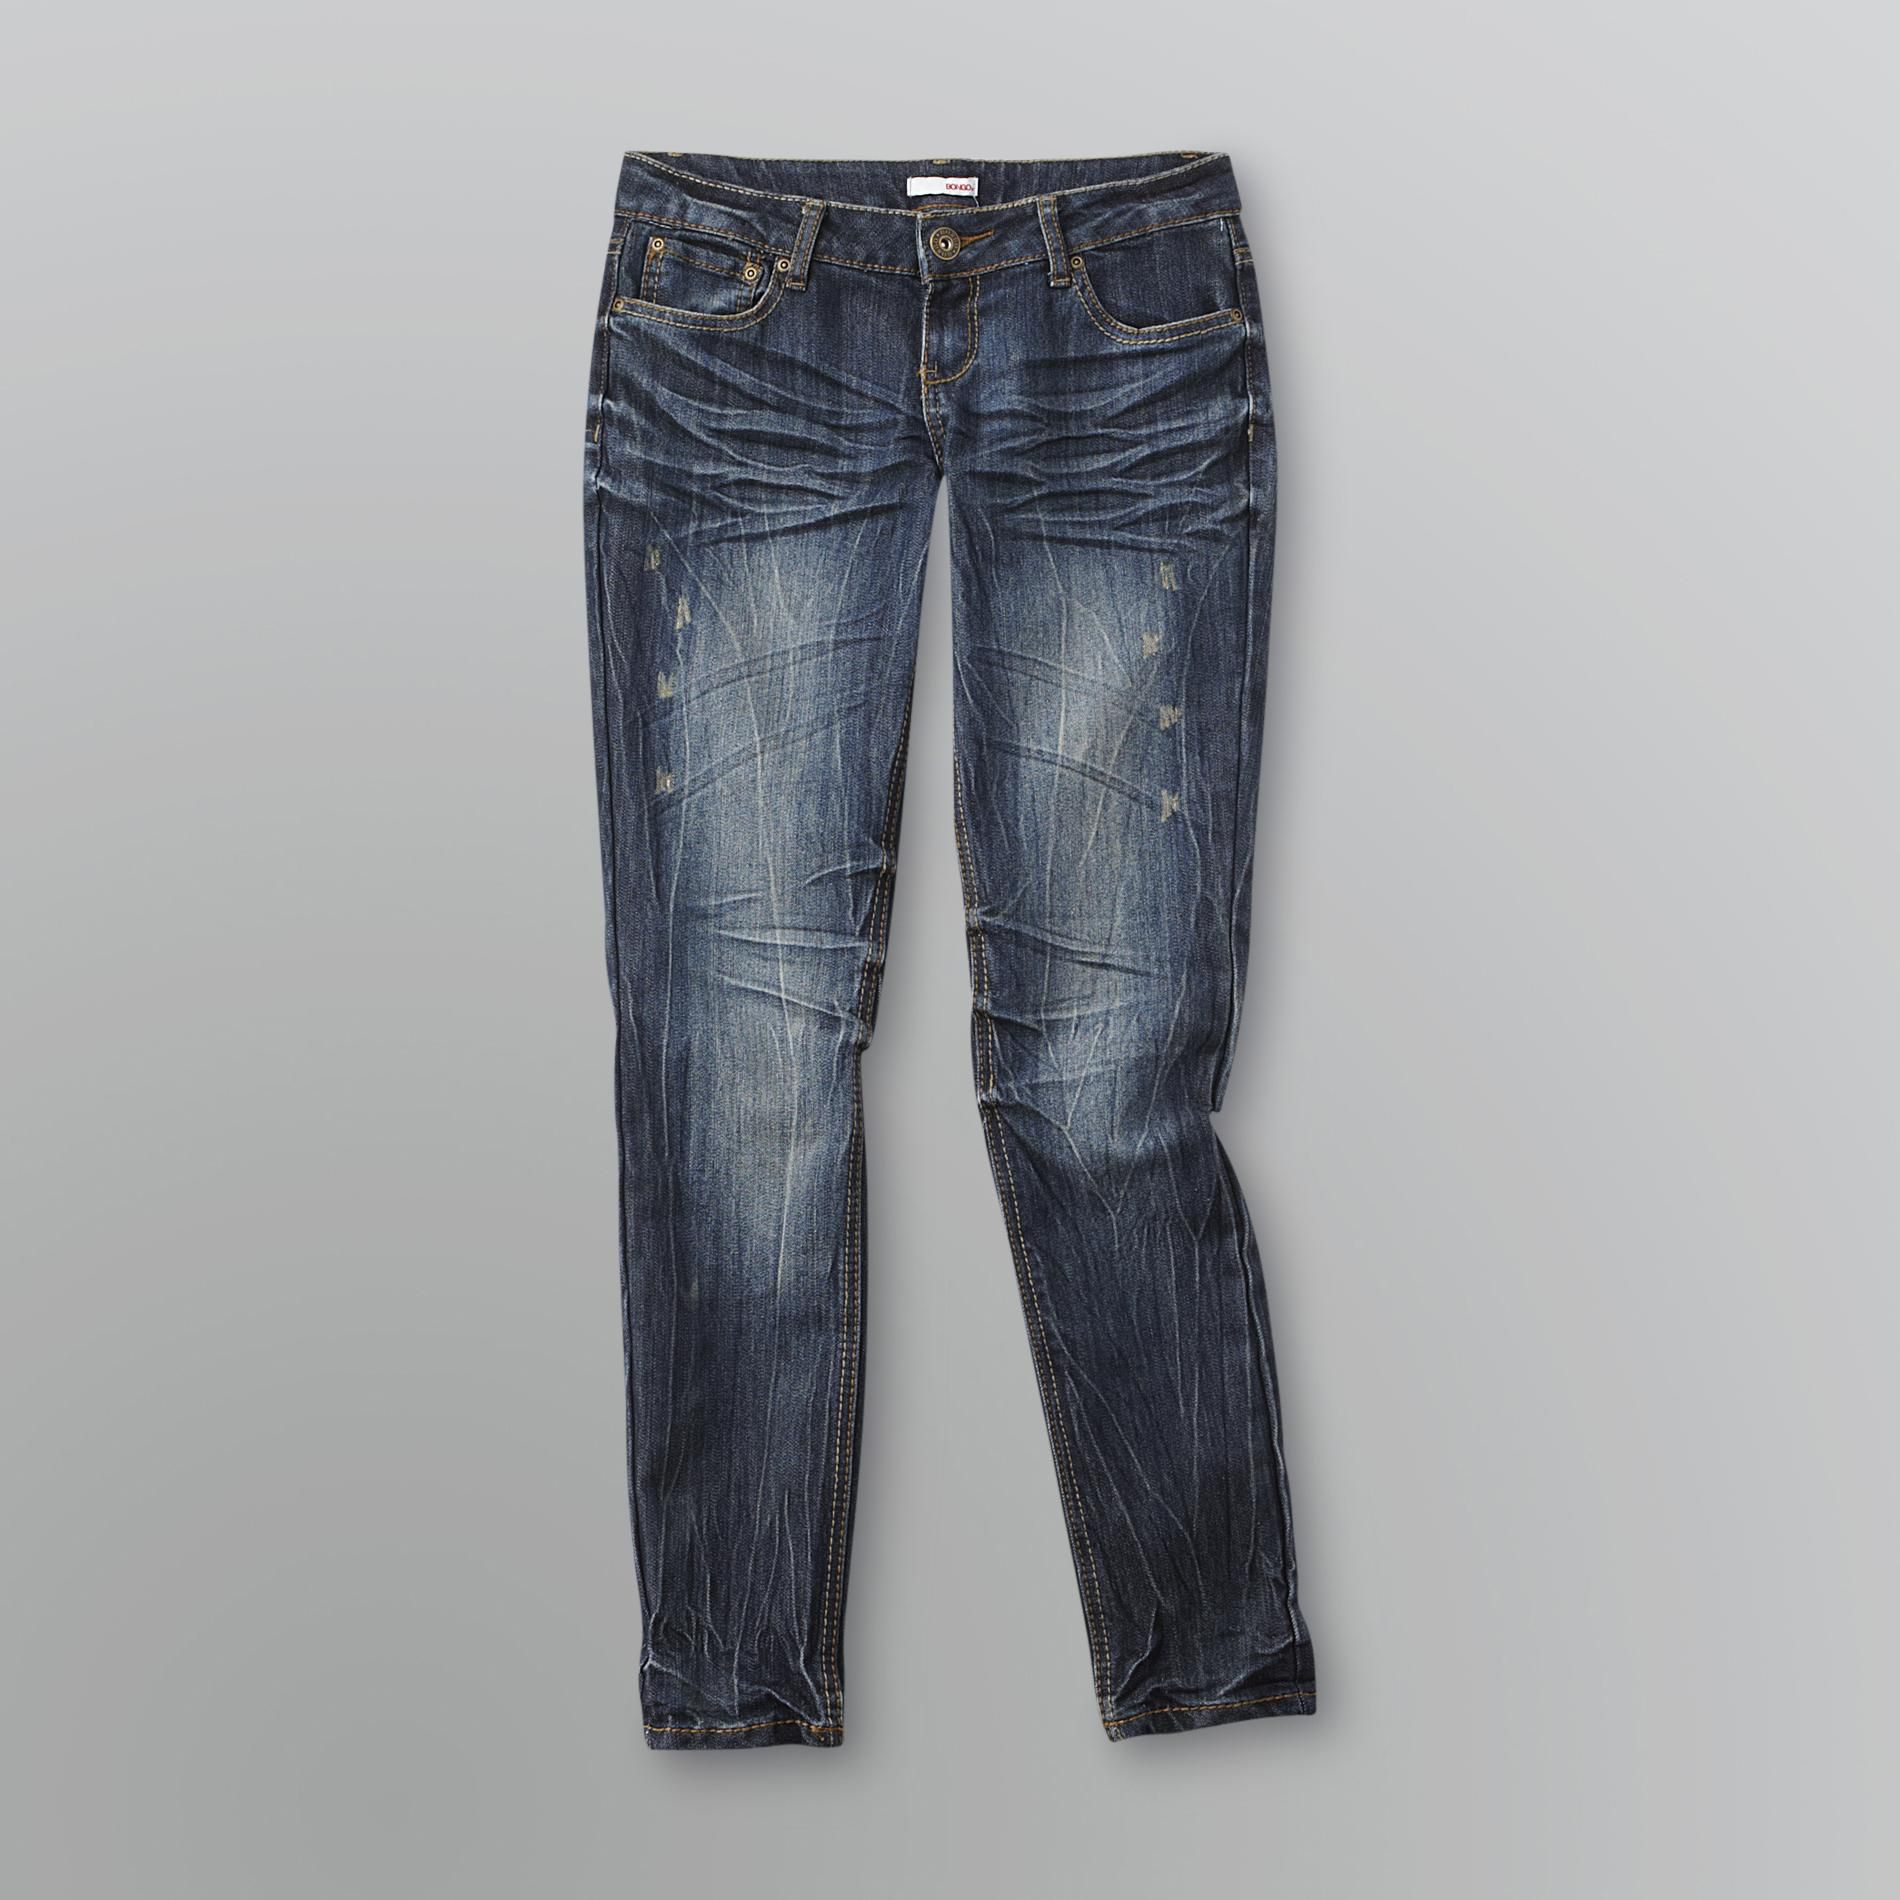 Bongo Junior's Distressed Denim Skinny Jeans at Sears.com